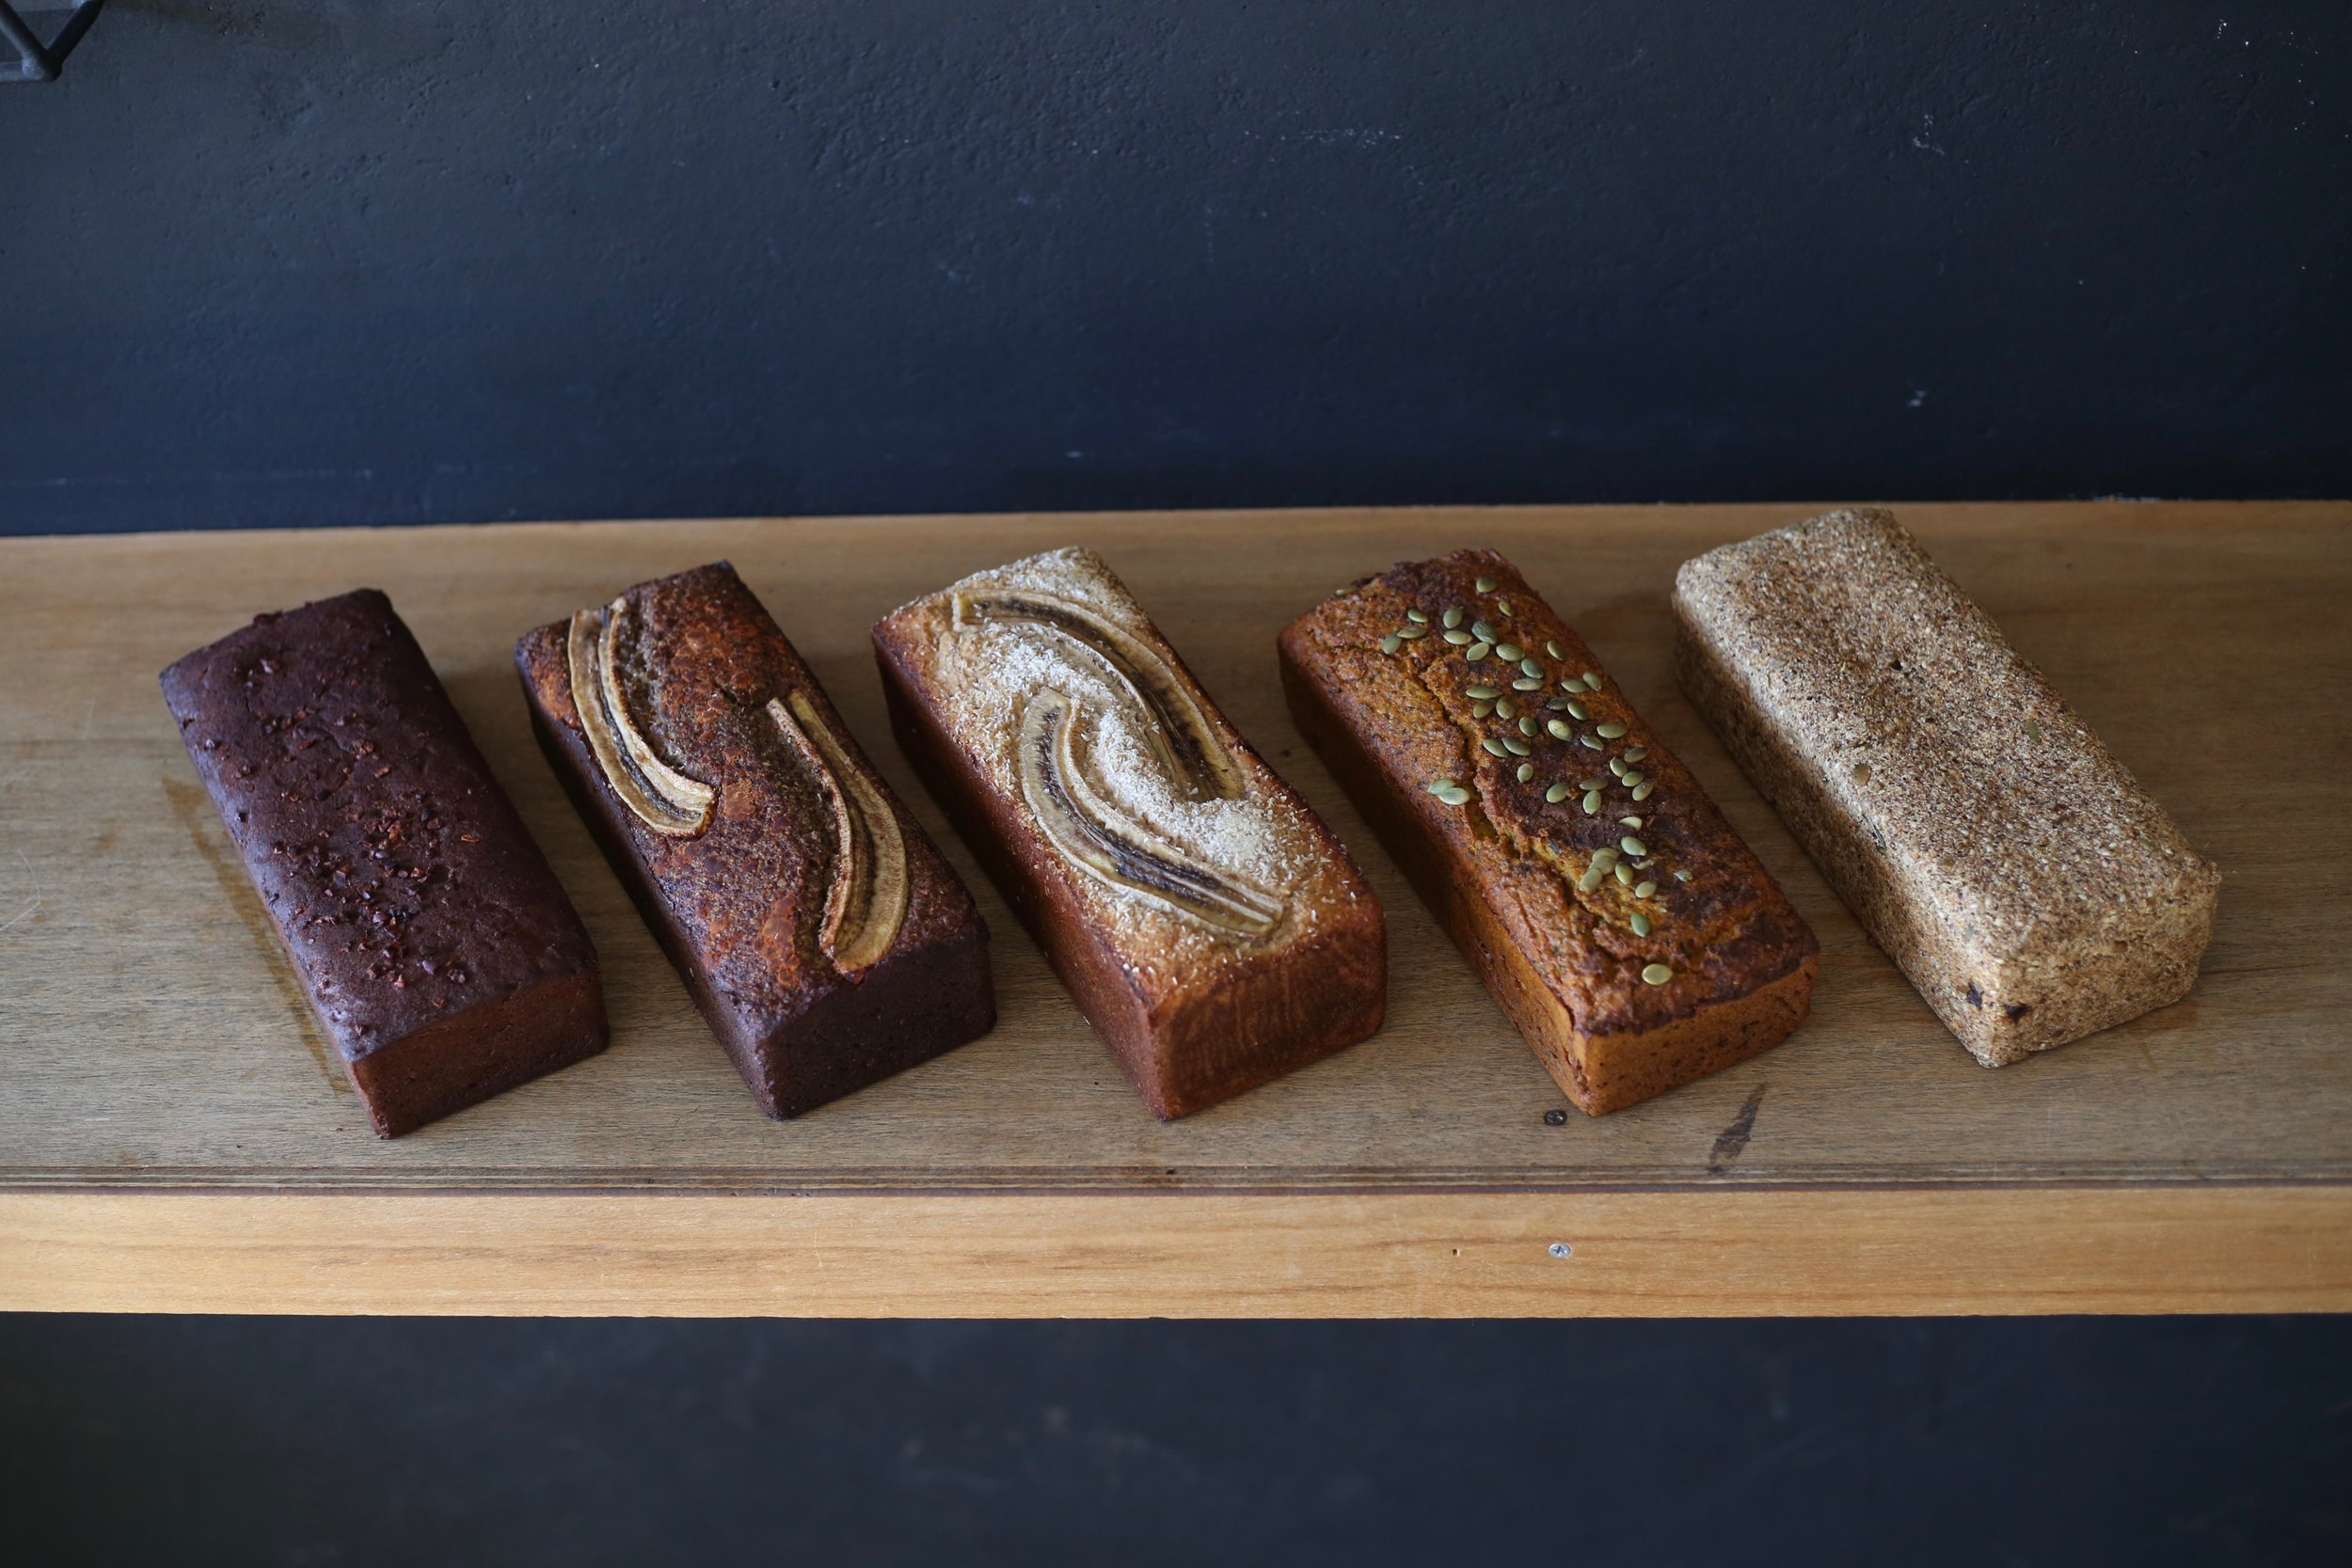 For foodies, including the sensitive ones. - Our artisan loaves are handmade in Perth, Australia and are free from artificial anything. Our range is free from gluten & dairy. You'll also find paleo, vegan, sugar free & nut free options to choose from.